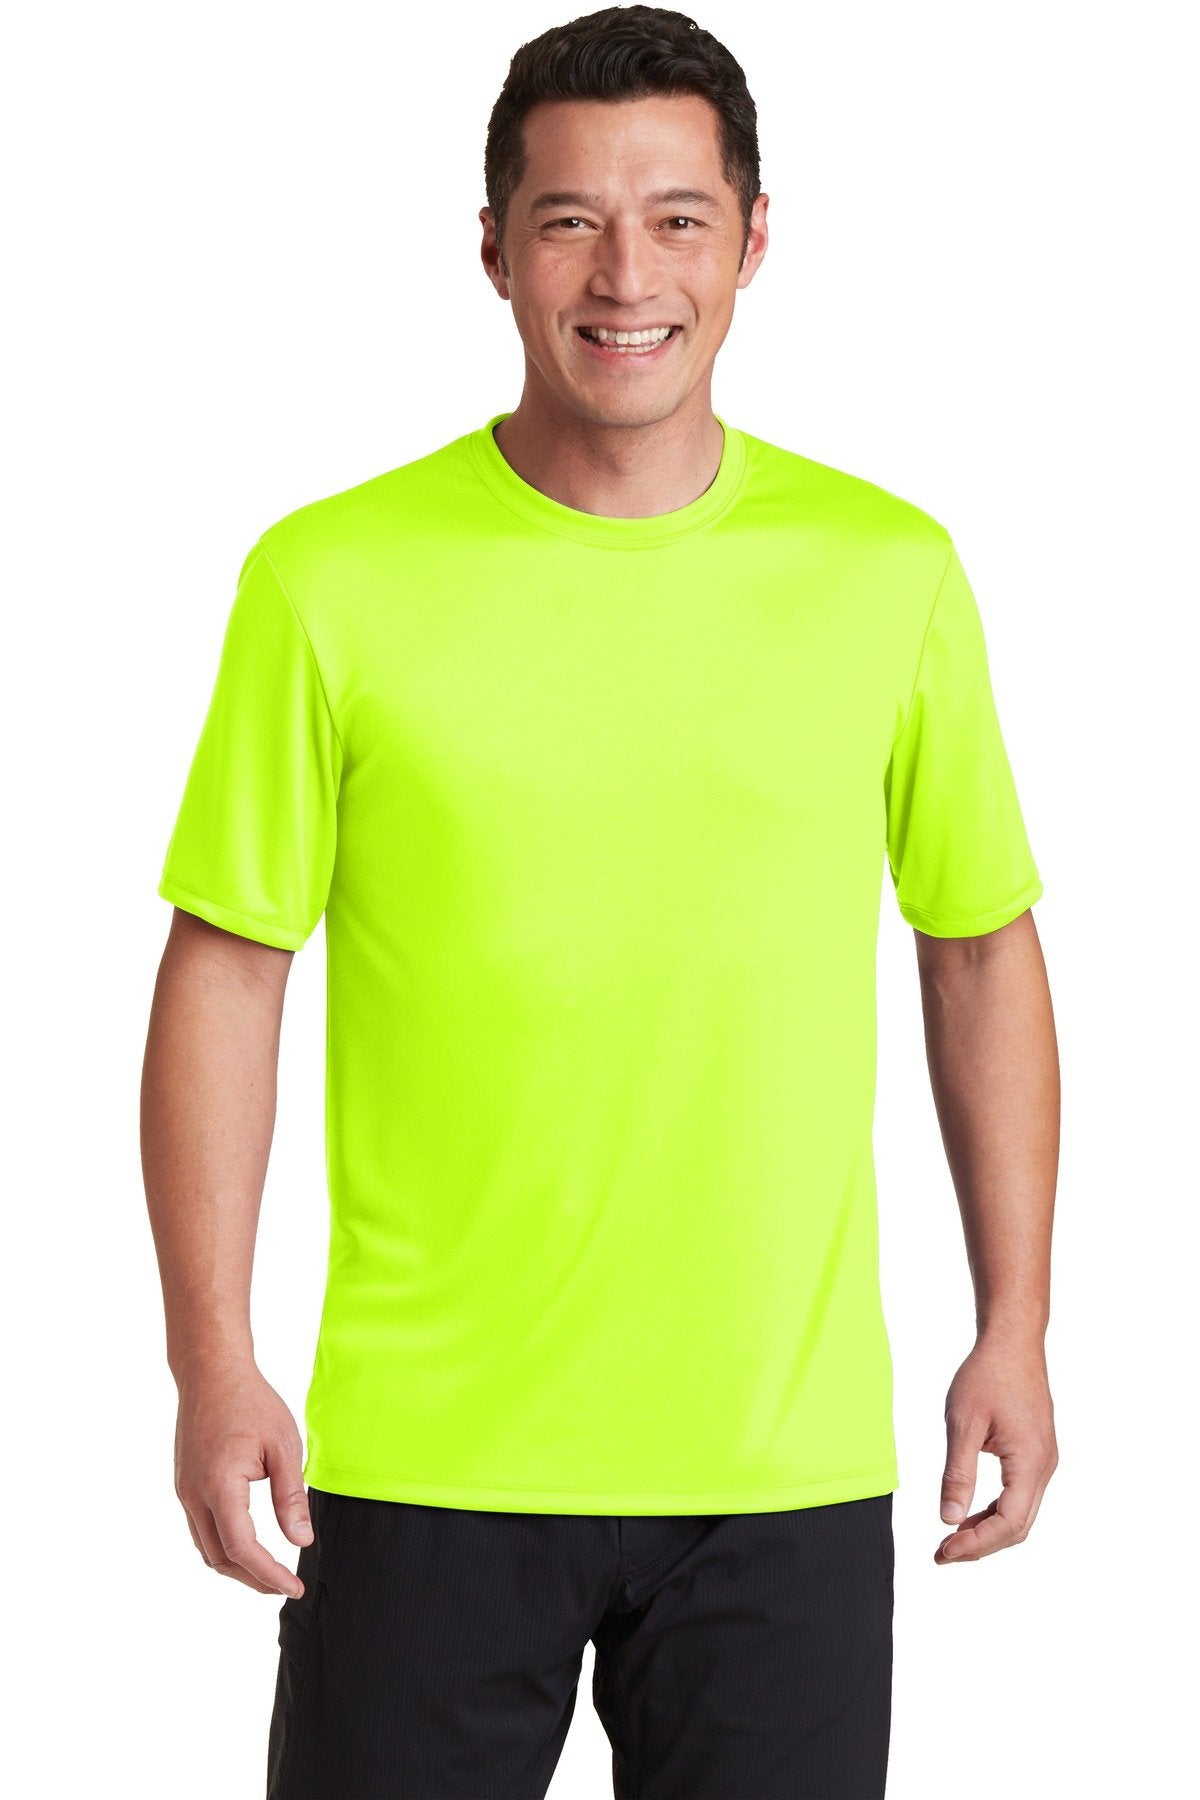 Safety Green - Hanes 4820